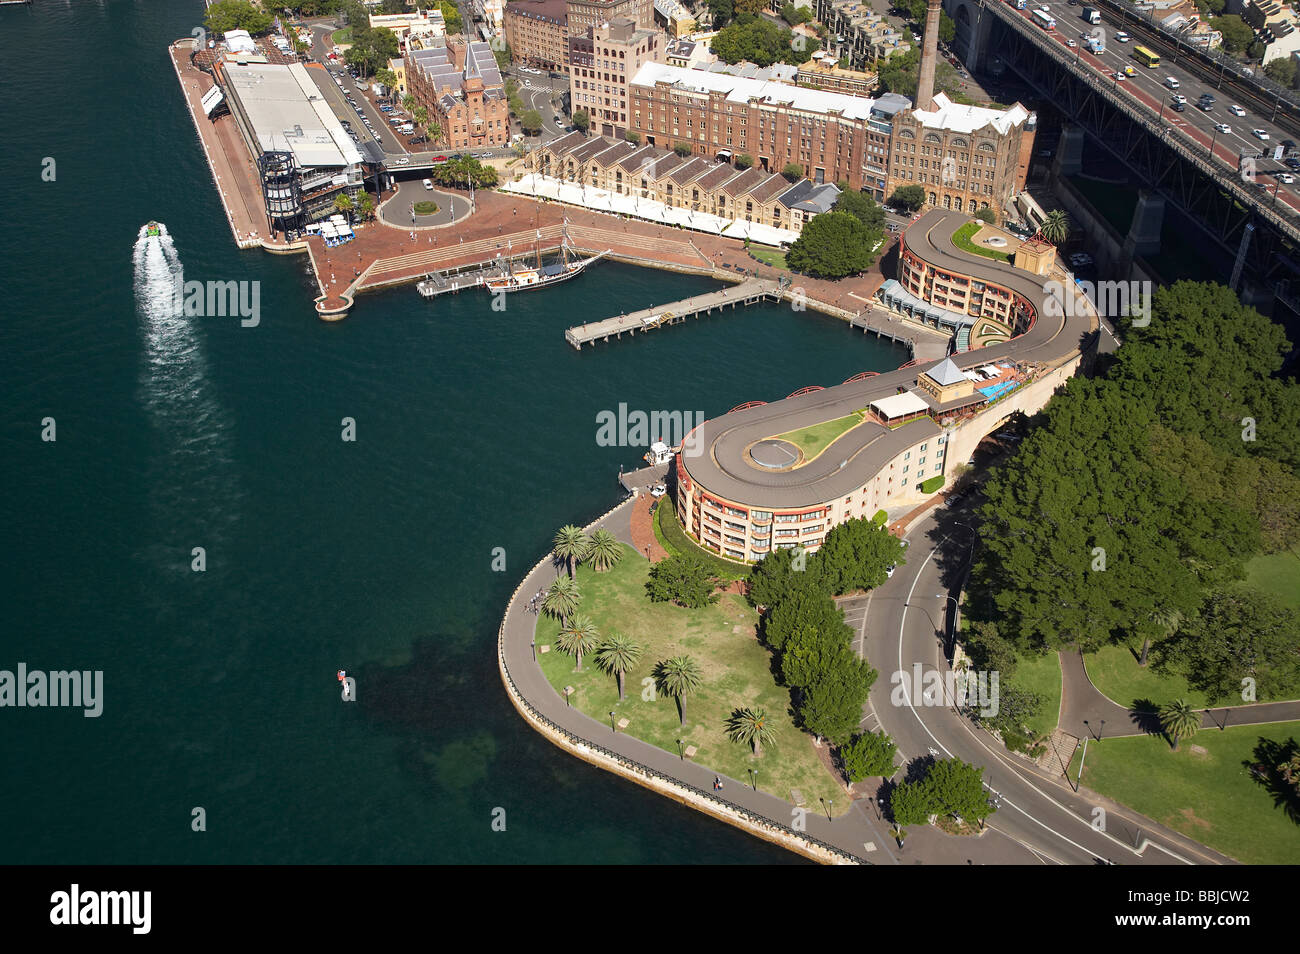 Overseas Passenger Terminal and Park Hyatt Hotel Campbells Cove The Rocks Sydney New South Wales Australia aerial - Stock Image